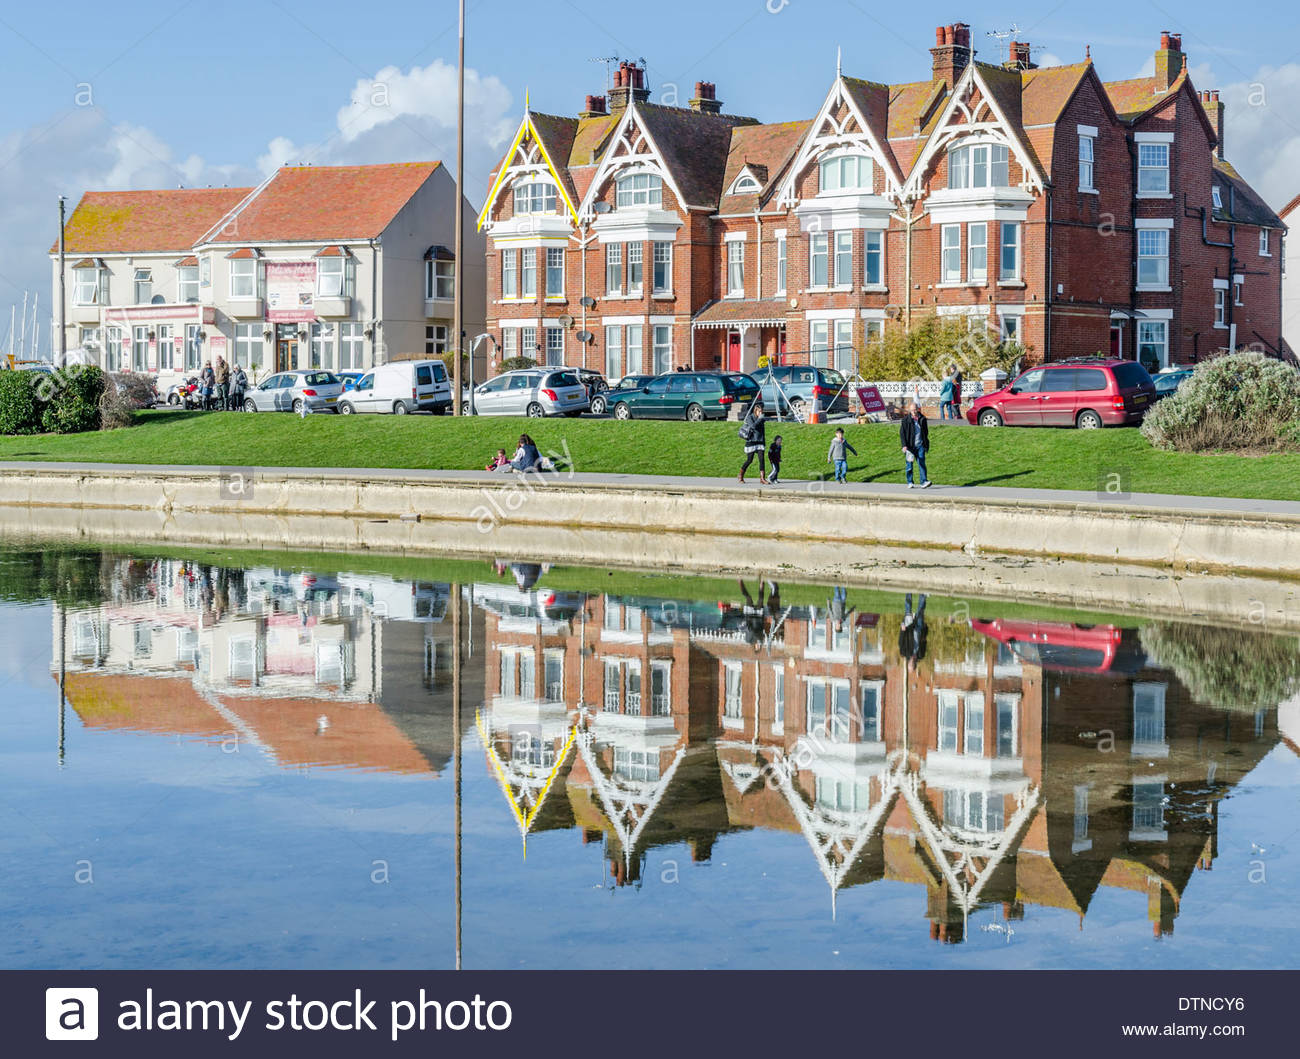 Victorian housing with reflections in nearby lake. - Stock Image